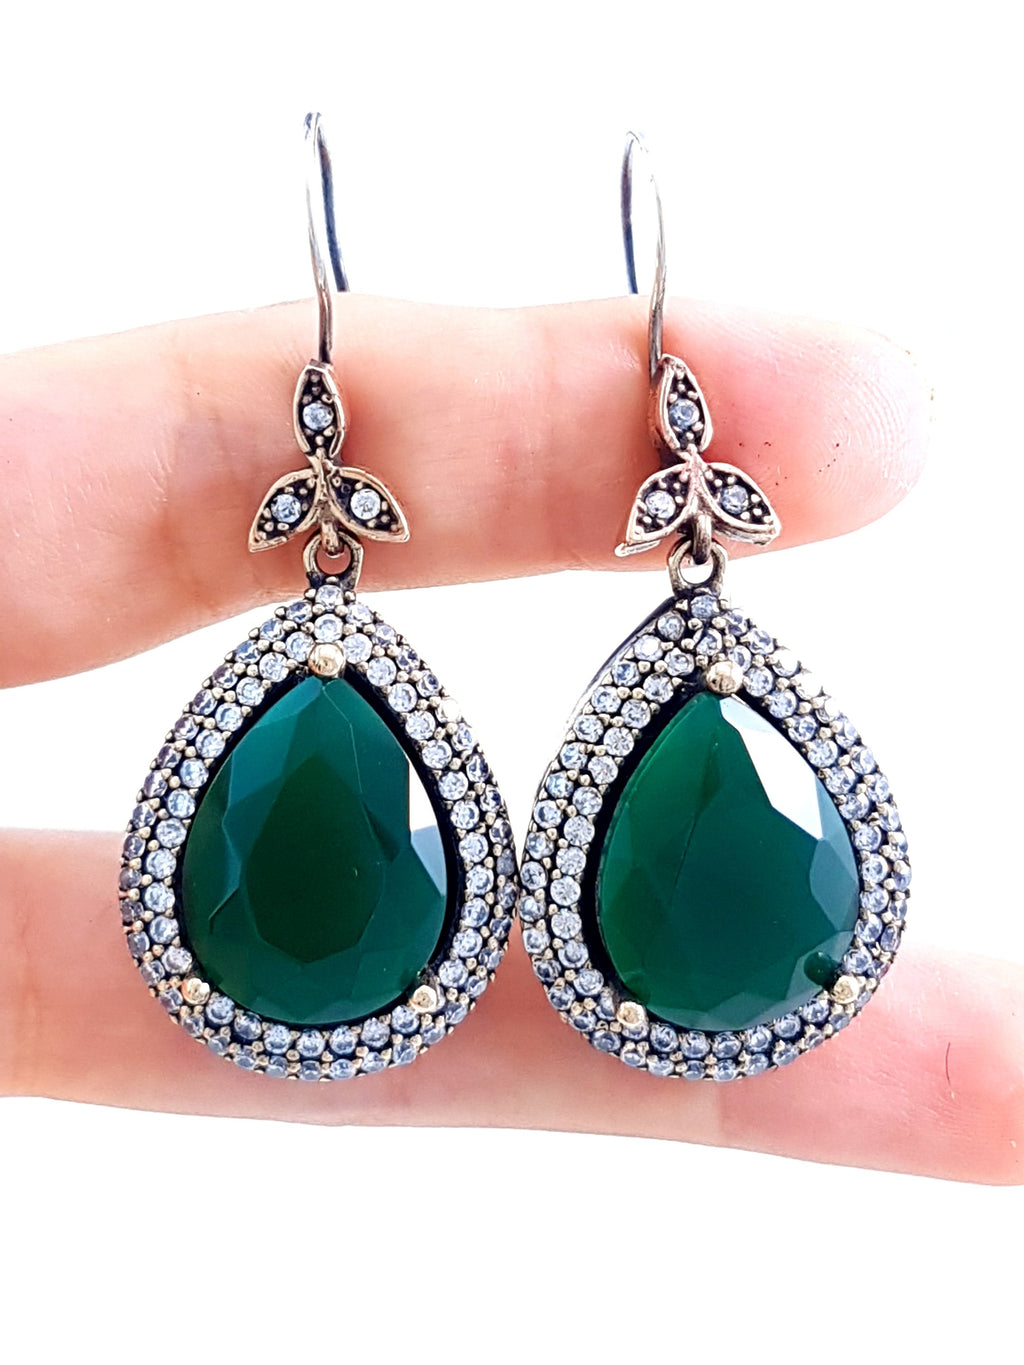 Emerald TOPAZ EARRINGS Turkish Wholesale Handmade 925 Sterling Silver Jewelry 1970 - Turkishsilverjewelry